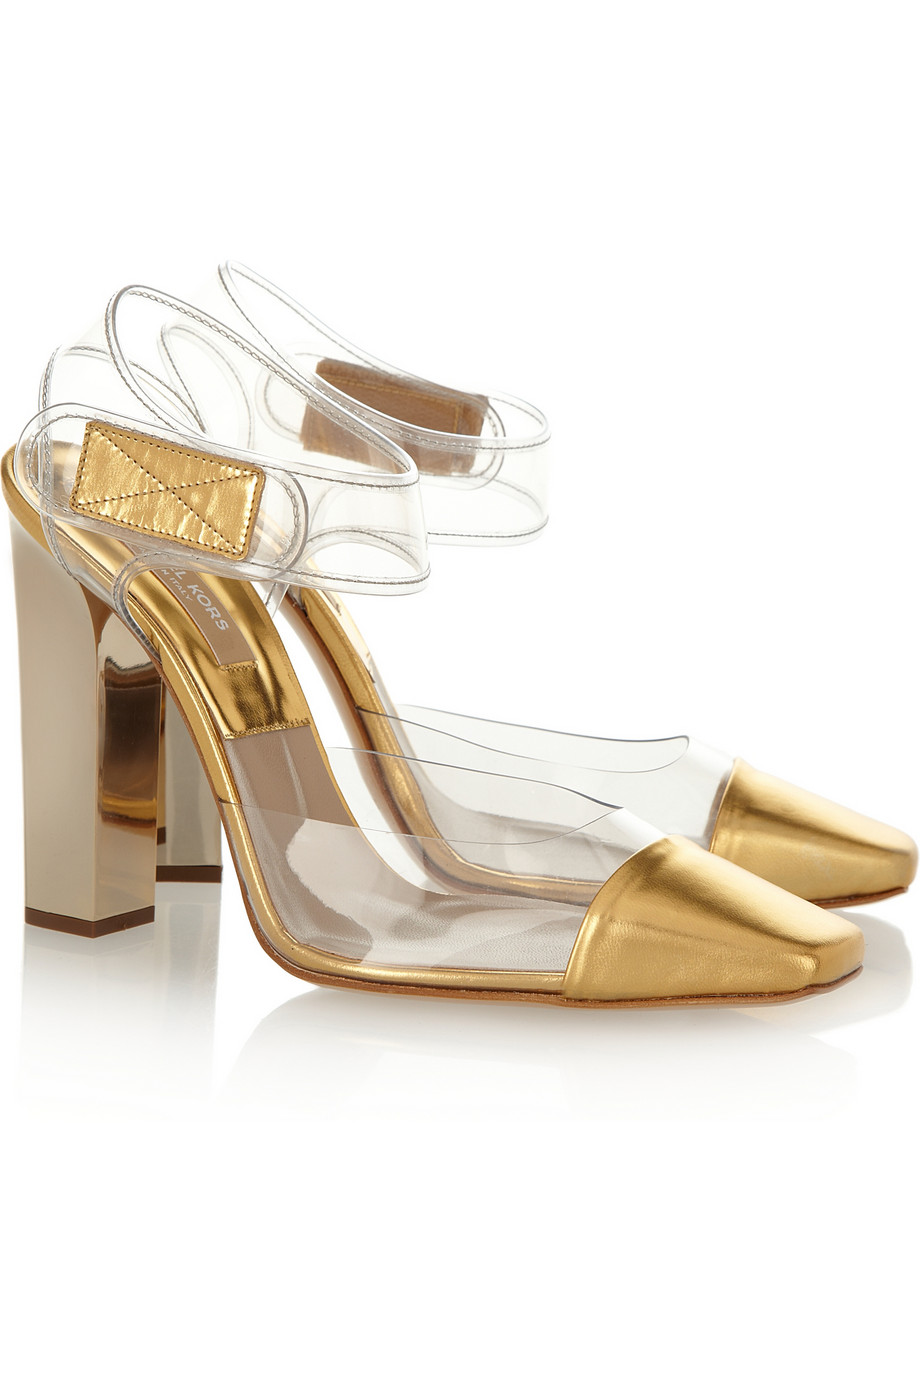 5bc5ab1b830b Lyst - Michael Kors Pvc and Leather Pumps in Metallic